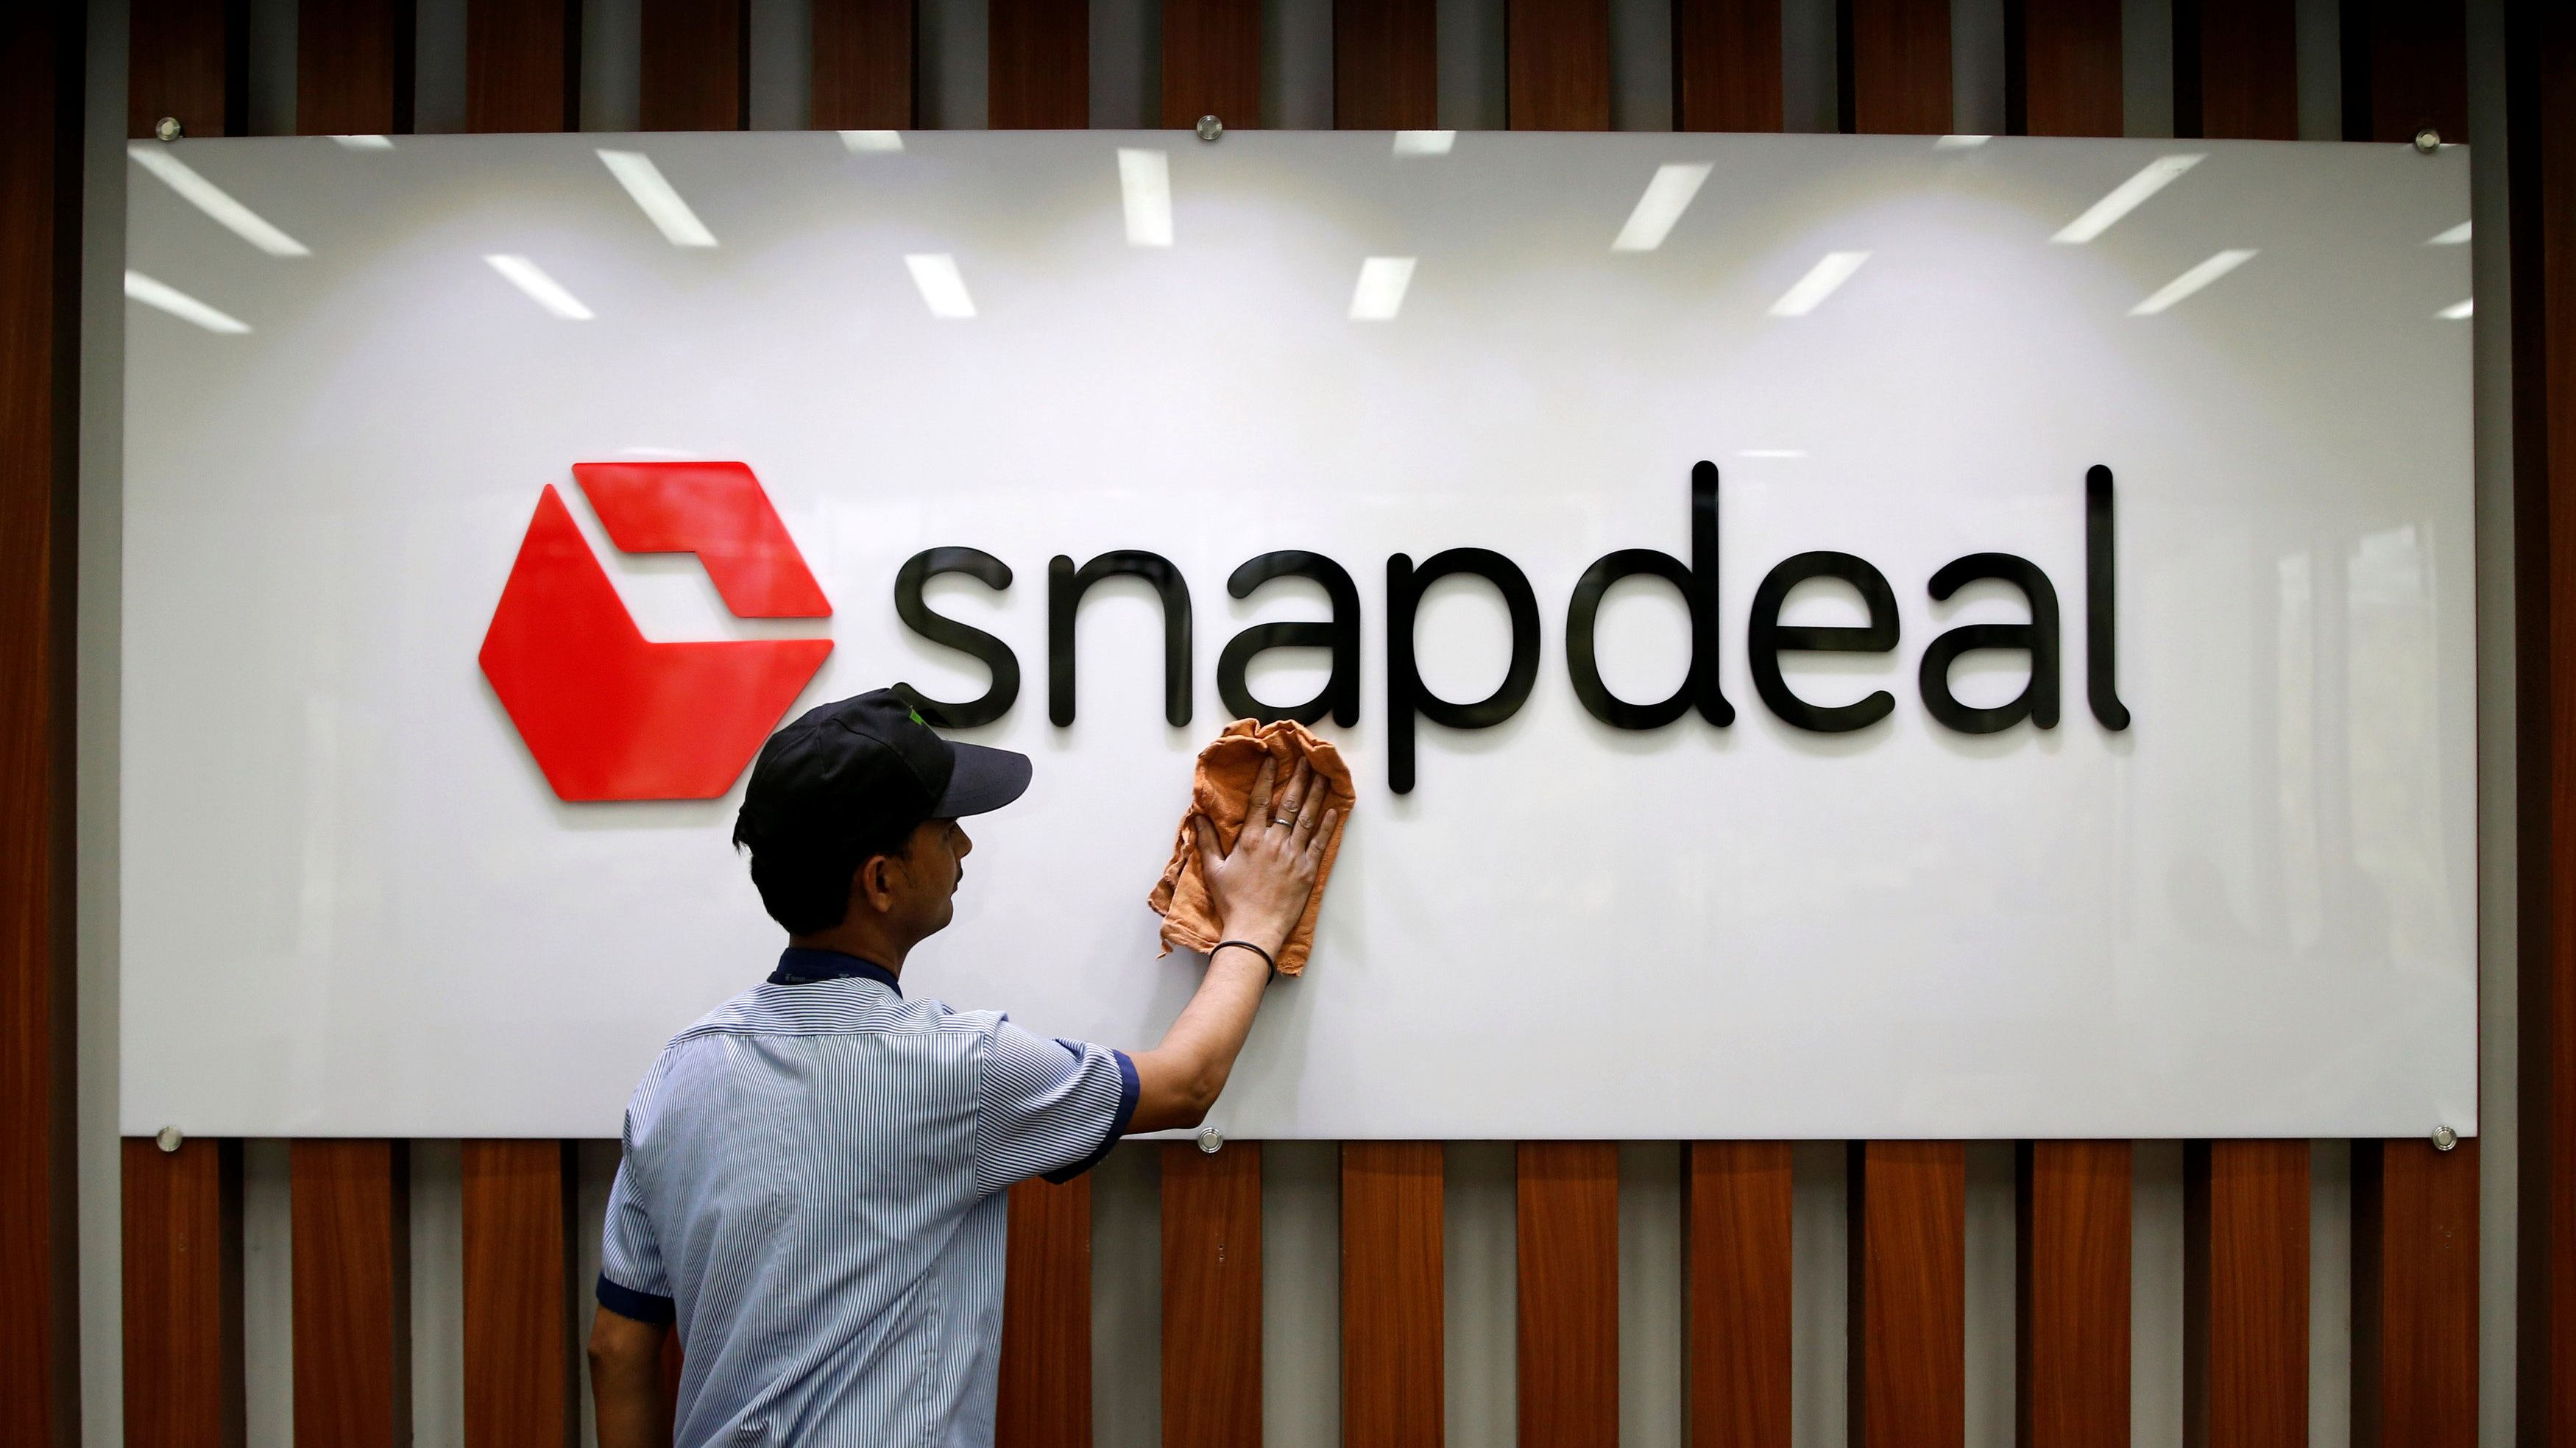 An employee cleans a Snapdeal logo at its headquarters in Gurugram on the outskirts of New Delhi, India, April 3, 2017.   Picture taken April 3. REUTERS/Adnan Abidi - RC19EEBDE9F0